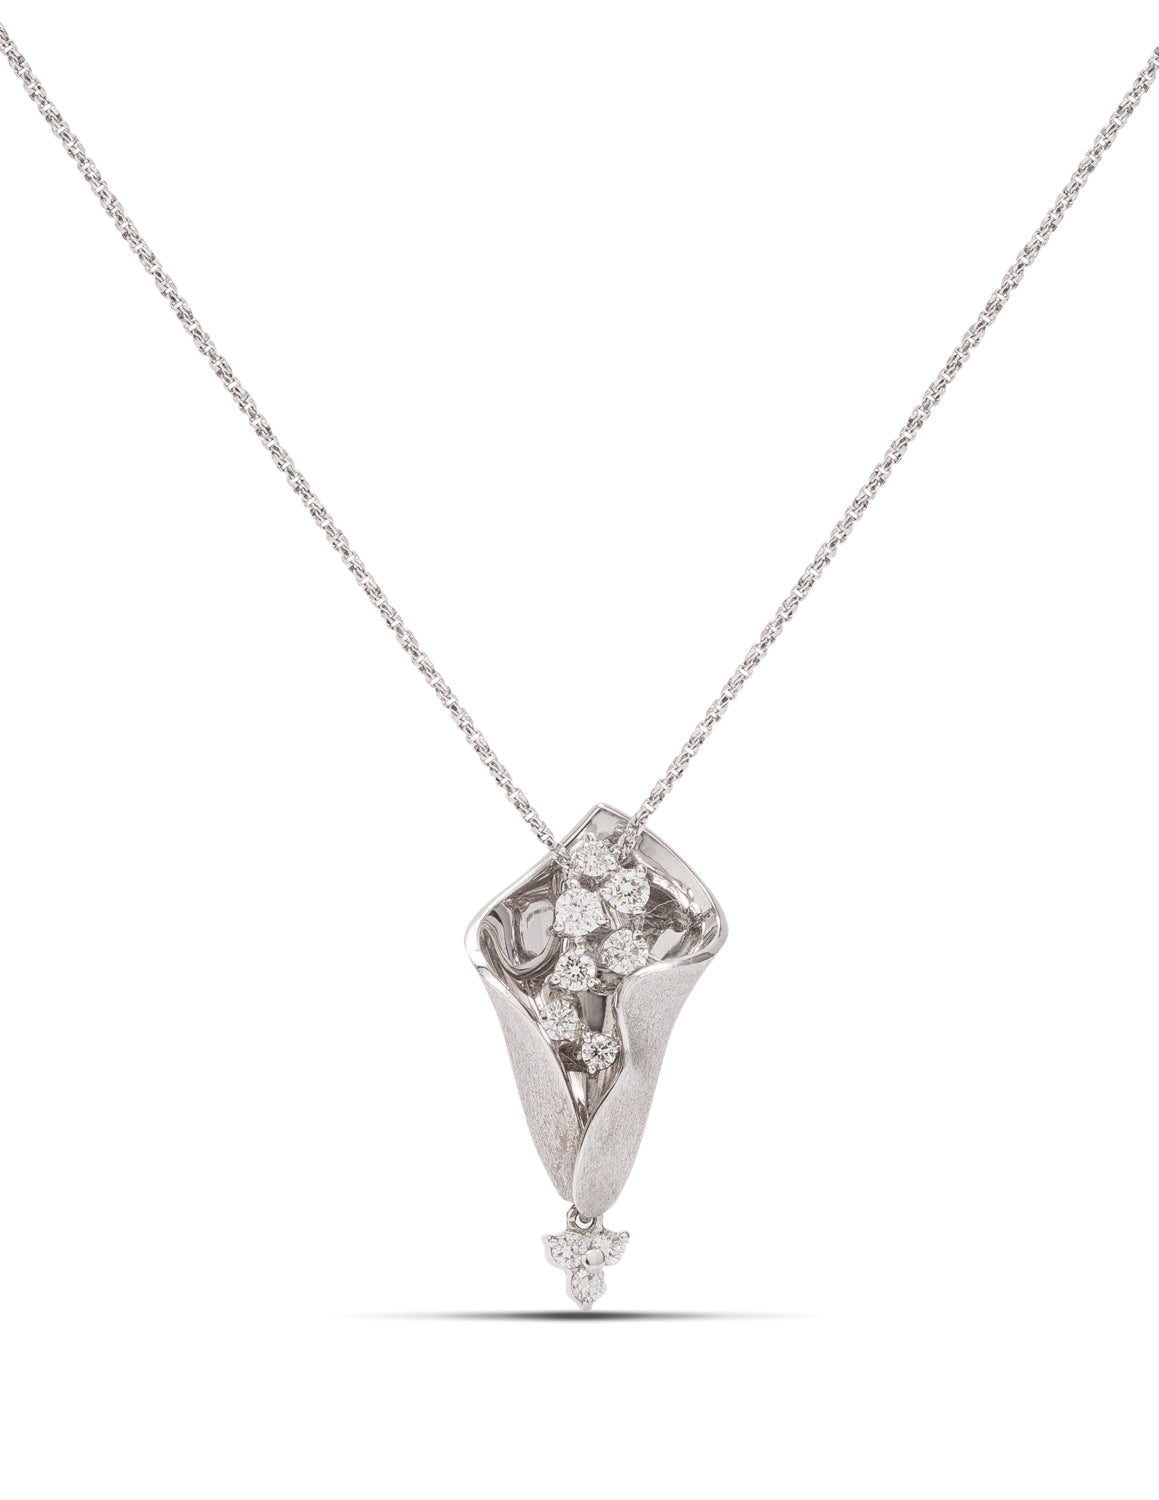 White Gold Diamond Pendant - Charles Koll Jewellers